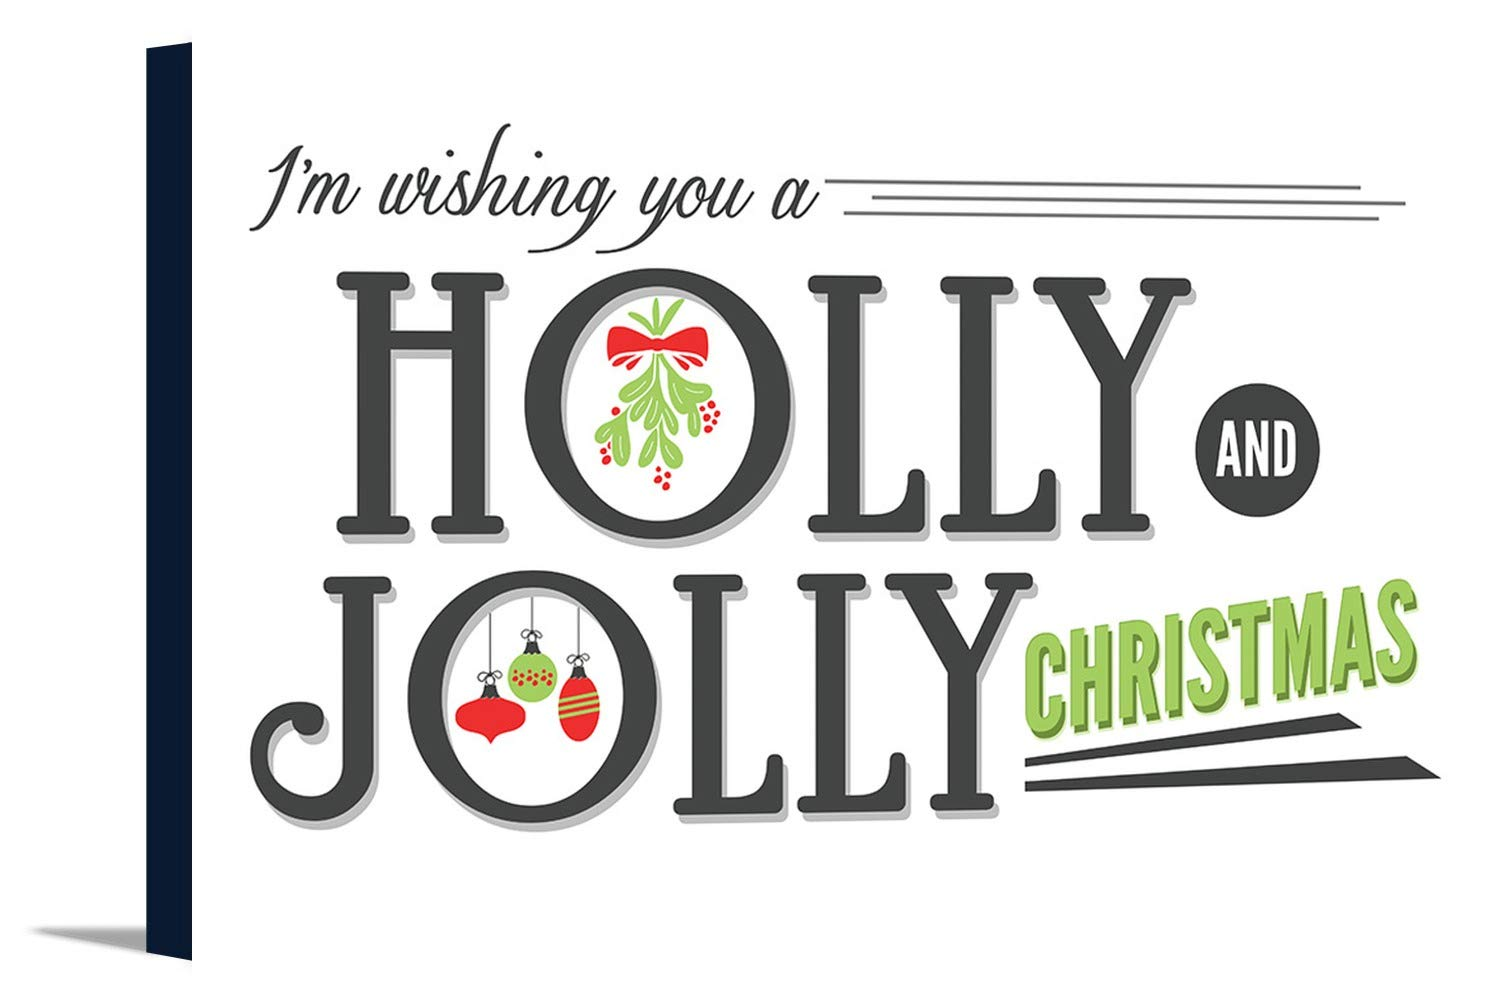 Have a Holly Jolly Christmas (白背景) 36 x 24 Gallery Canvas LANT-3P-SC-56576-24x36 36 x 24 Gallery Canvas  B0184B4RTG